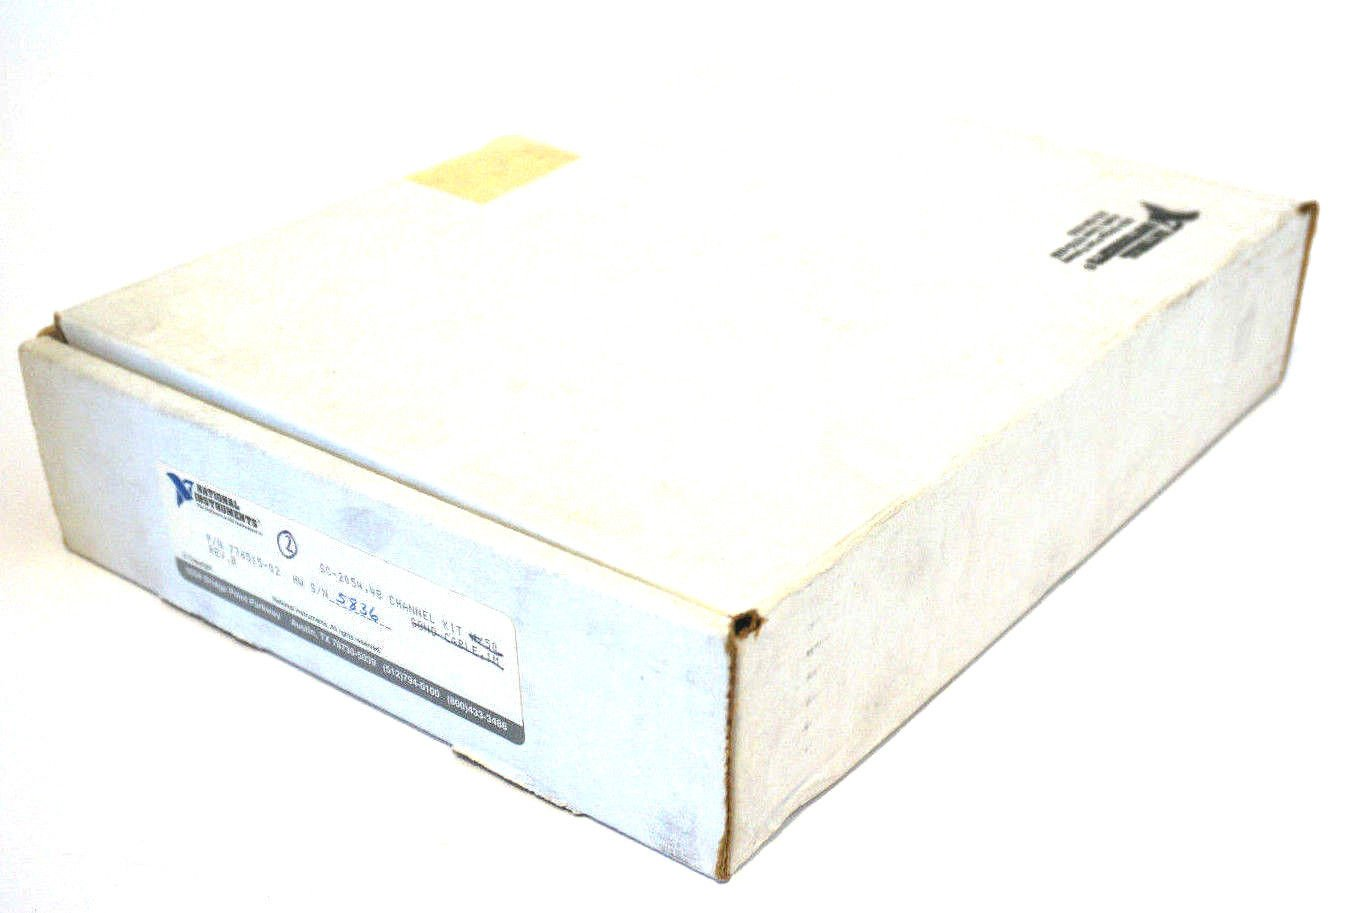 NEW NATIONAL INSTRUMENTS SC-2054 CHANNEL KIT 776515-02 REV. B SC2054